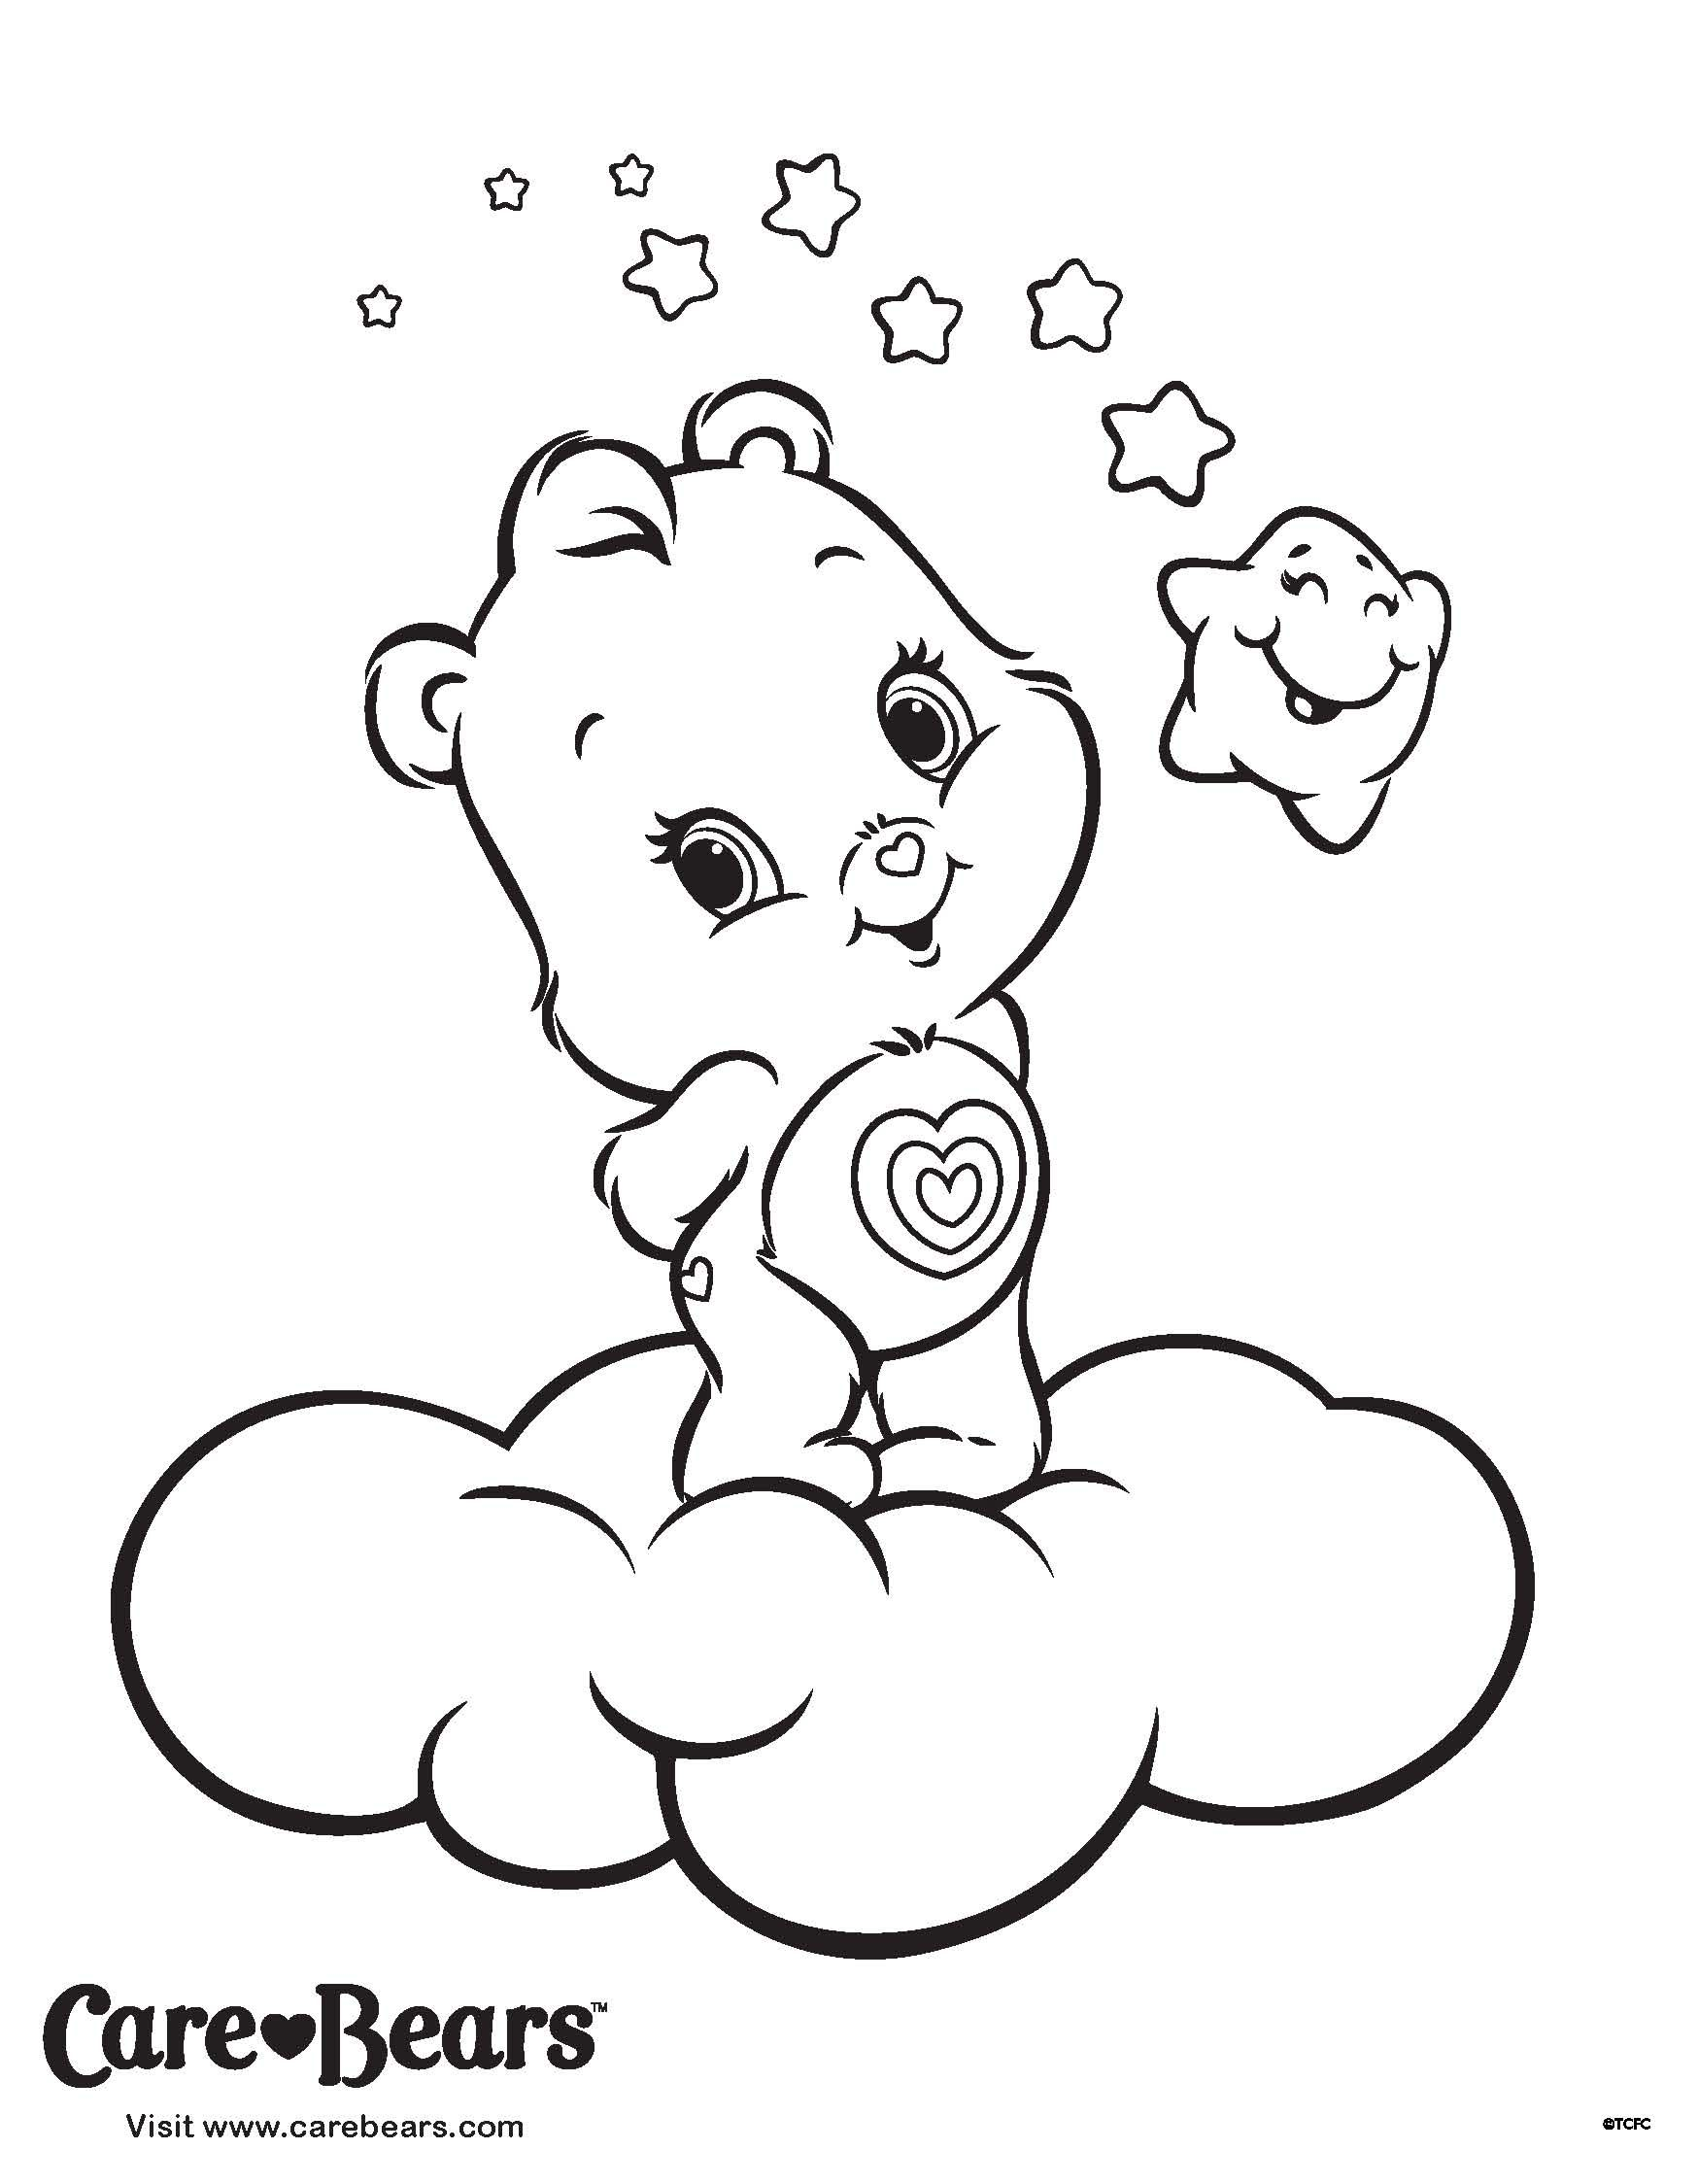 Care Bears Coloring Pages - Bing Images | Ann\'s Coloring Pages ...